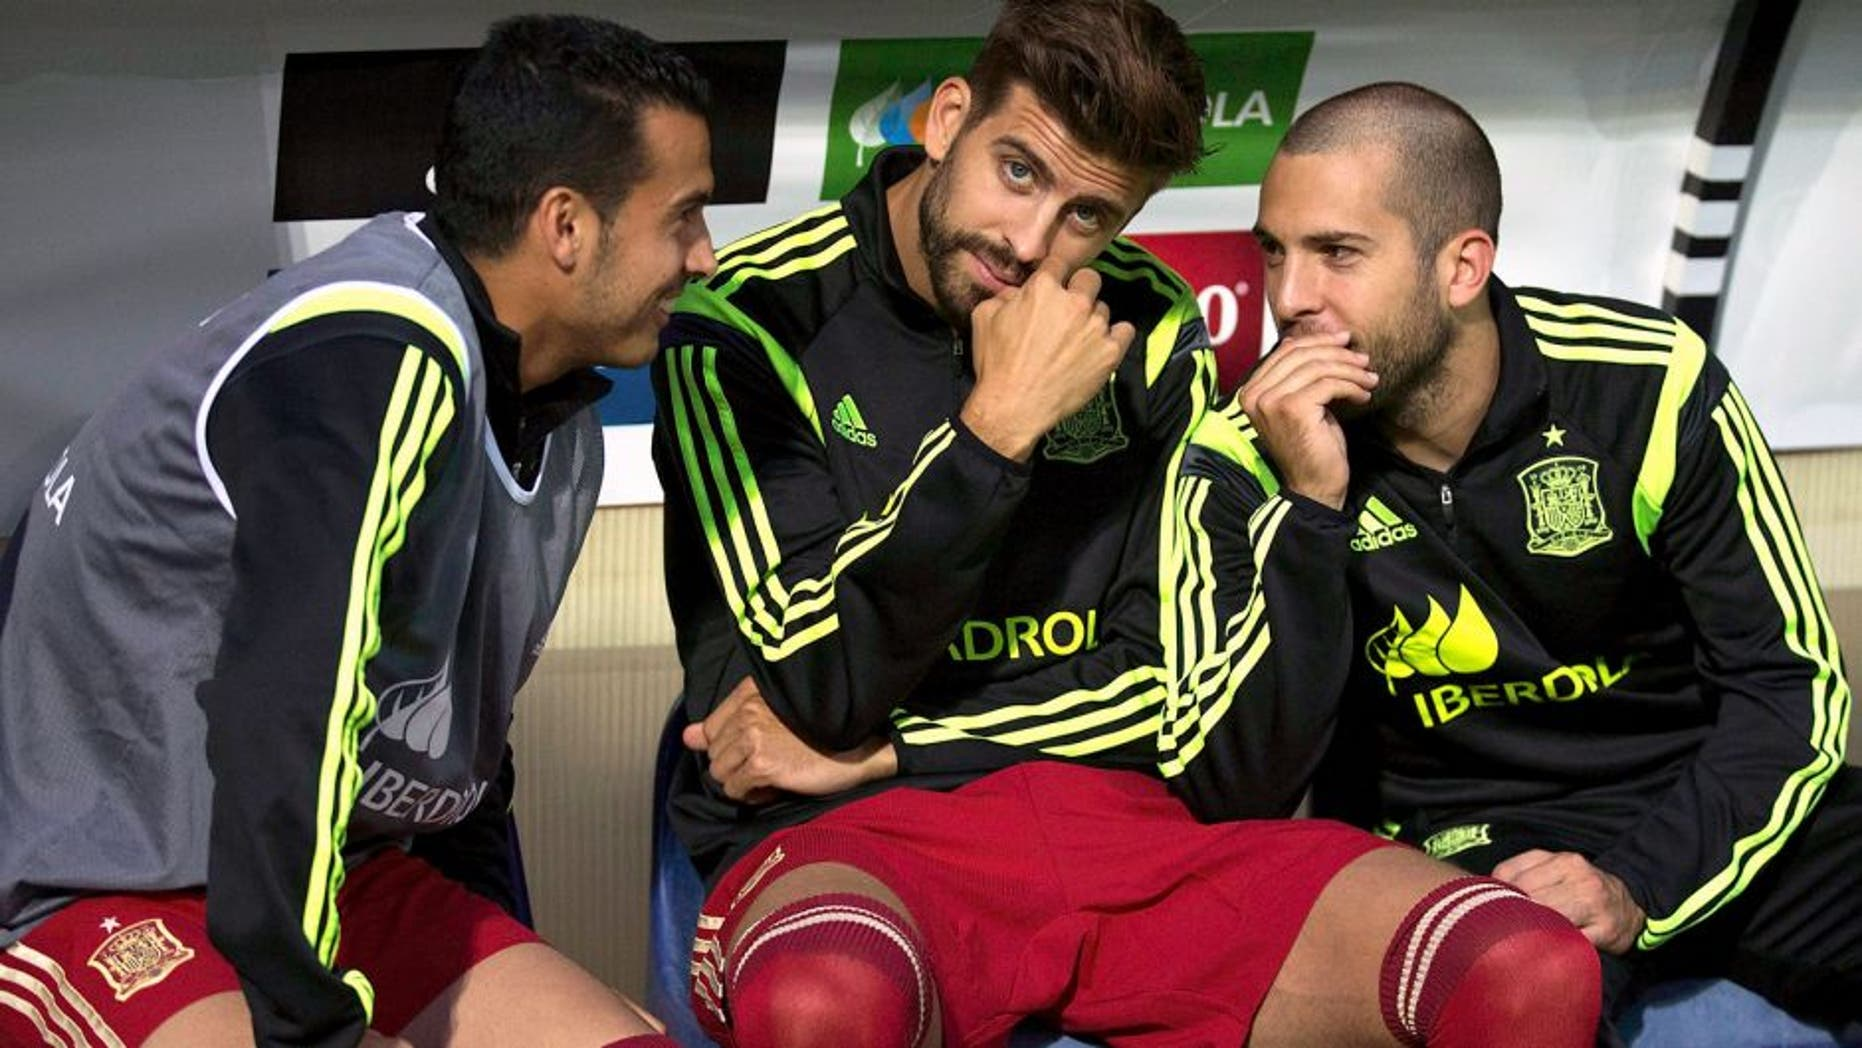 LEON, SPAIN - JUNE 11: Gerard Pique (2ndL) of Spain looks on sitted on the bench surrounded by teammates Jordi Alba (R) and Pedro Rodriguez Ledesma (L) during the international friendly match between Spain and Costa Rica at Reino de Leon Stadium on June 11, 2015 in Leon, Spain. (Photo by Gonzalo Arroyo Moreno/Getty Images)